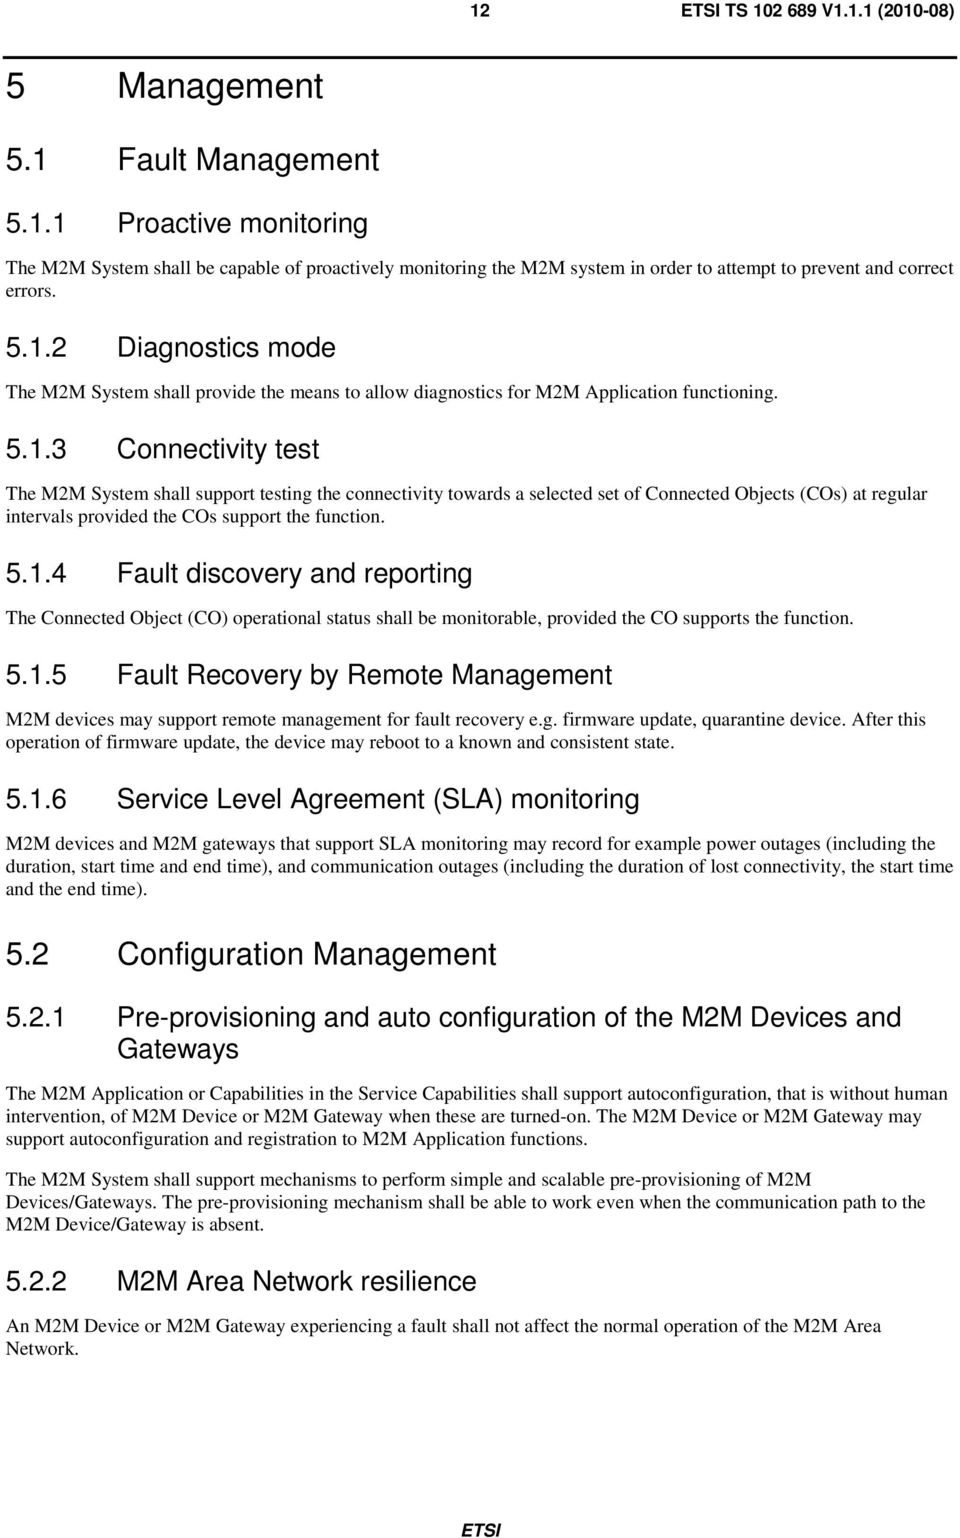 5.1.4 Fault discovery and reporting The Connected Object (CO) operational status shall be monitorable, provided the CO supports the function. 5.1.5 Fault Recovery by Remote Management M2M devices may support remote management for fault recovery e.